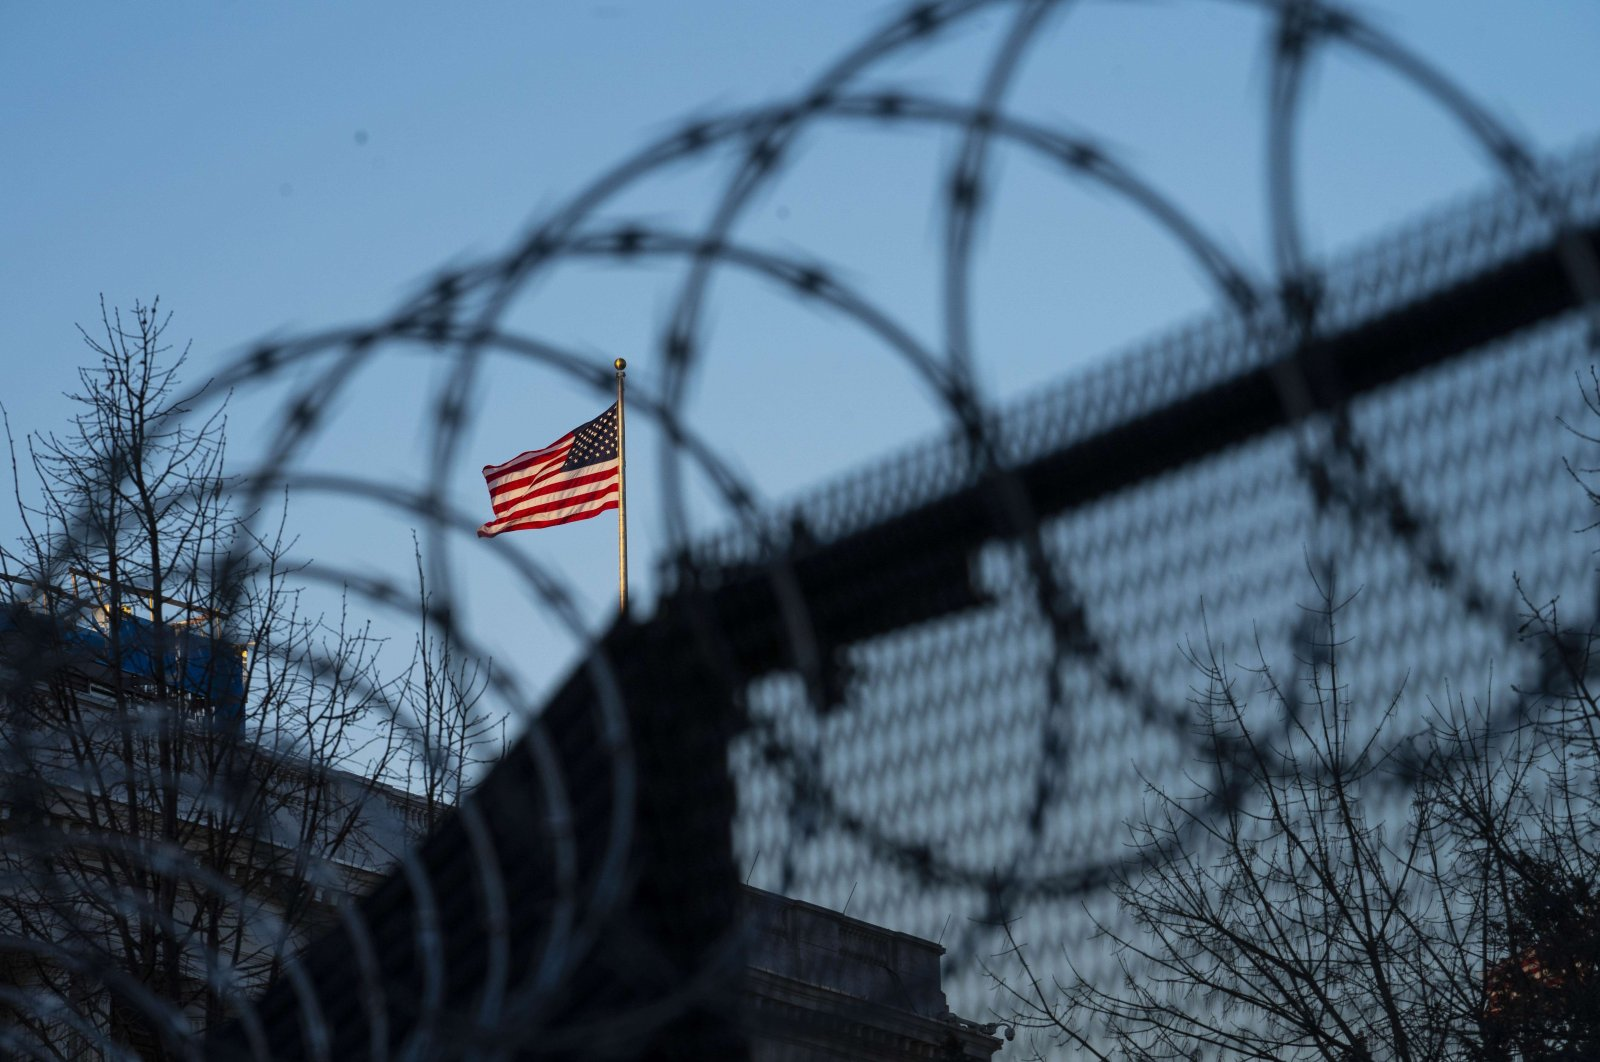 An American flag is seen through barbed wire fencing at sunrise on Capitol Hill in Washington, D.C., on Feb. 8, 2021. (AFP Photo)